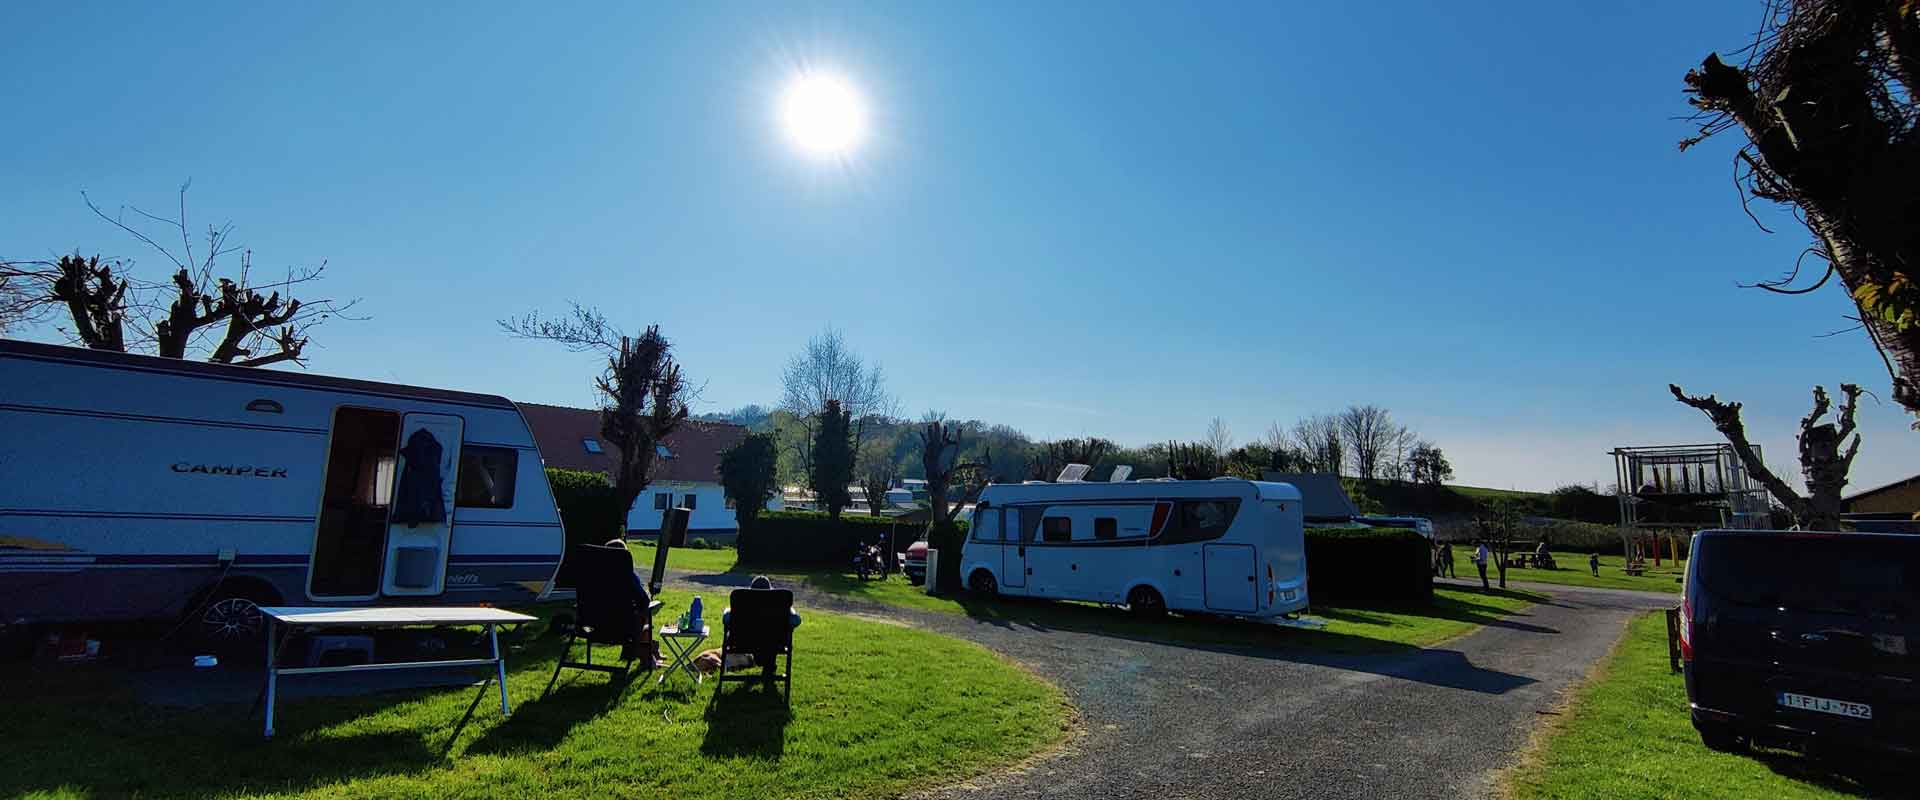 emplacement camping wissant cote opale